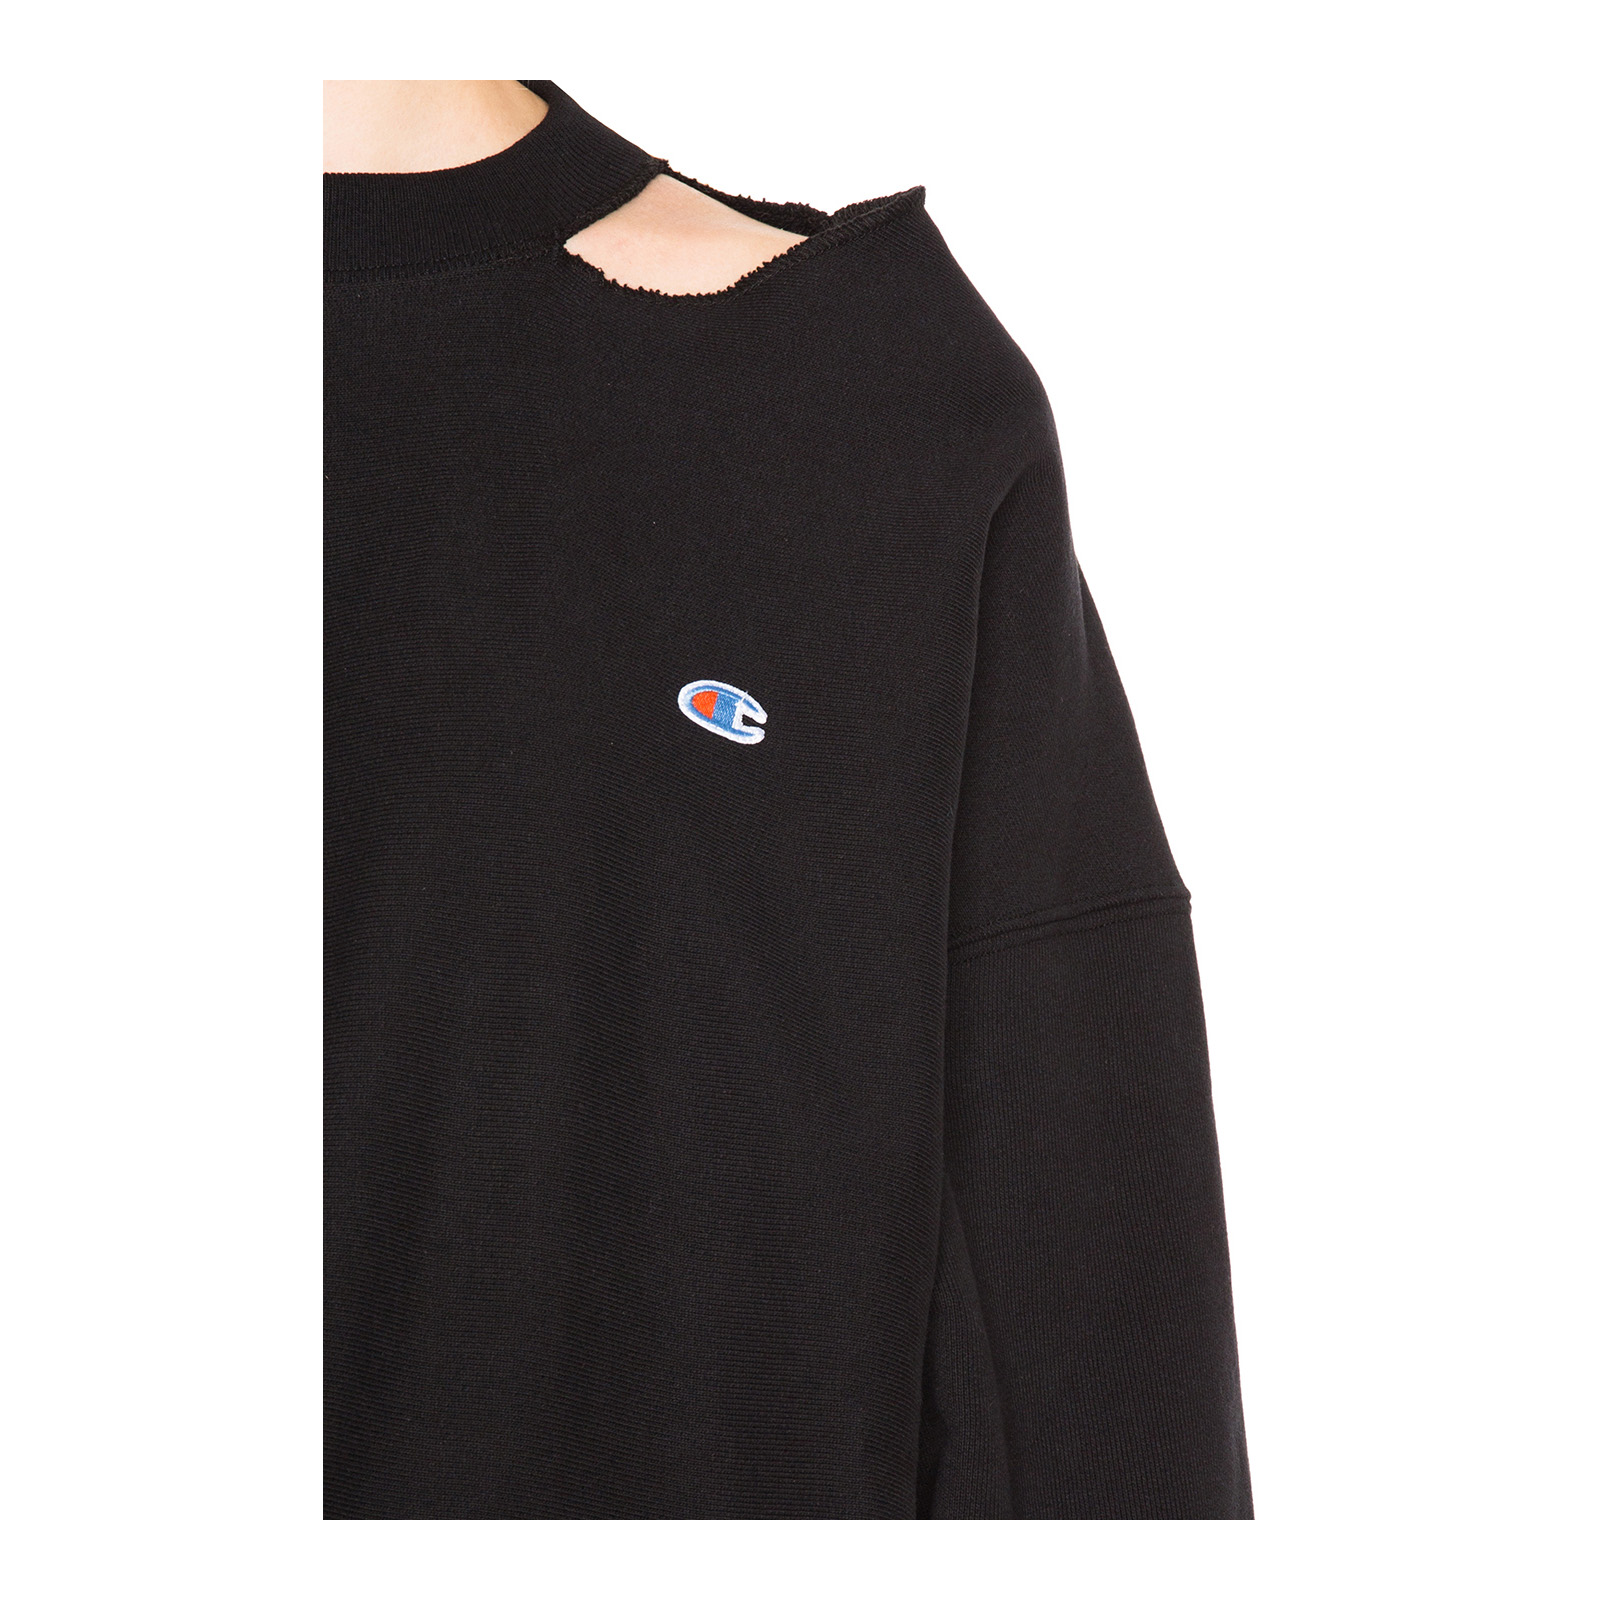 VETEMENTS X CHAMPION Cut Out Neckline Sweatshirt